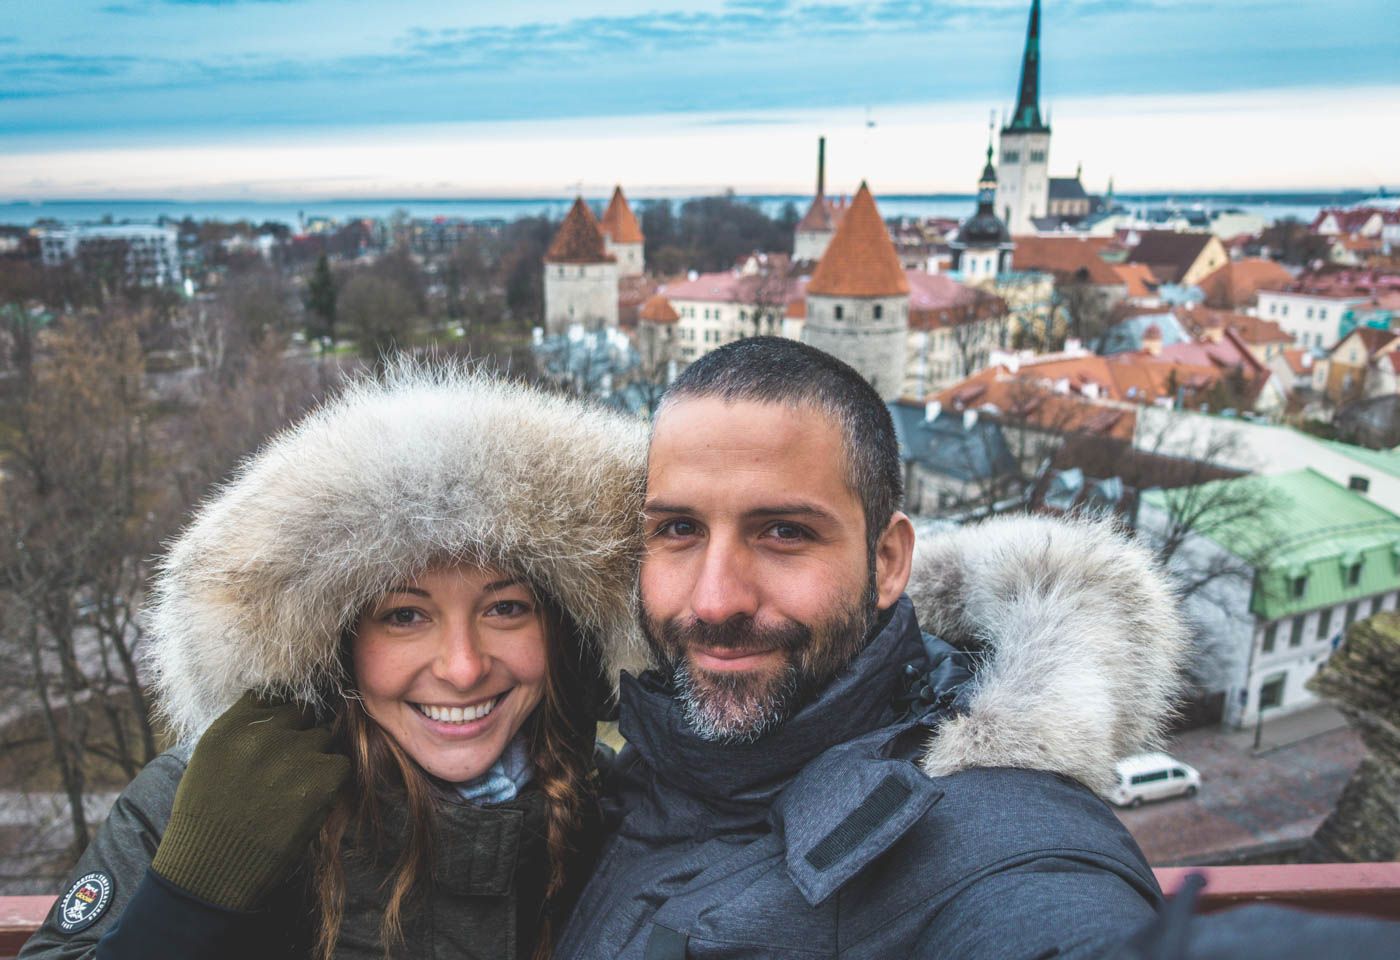 Things to do in Tallinn: Max and Oksana overlooking Old Town Tallinn on a recent visit in December 2017